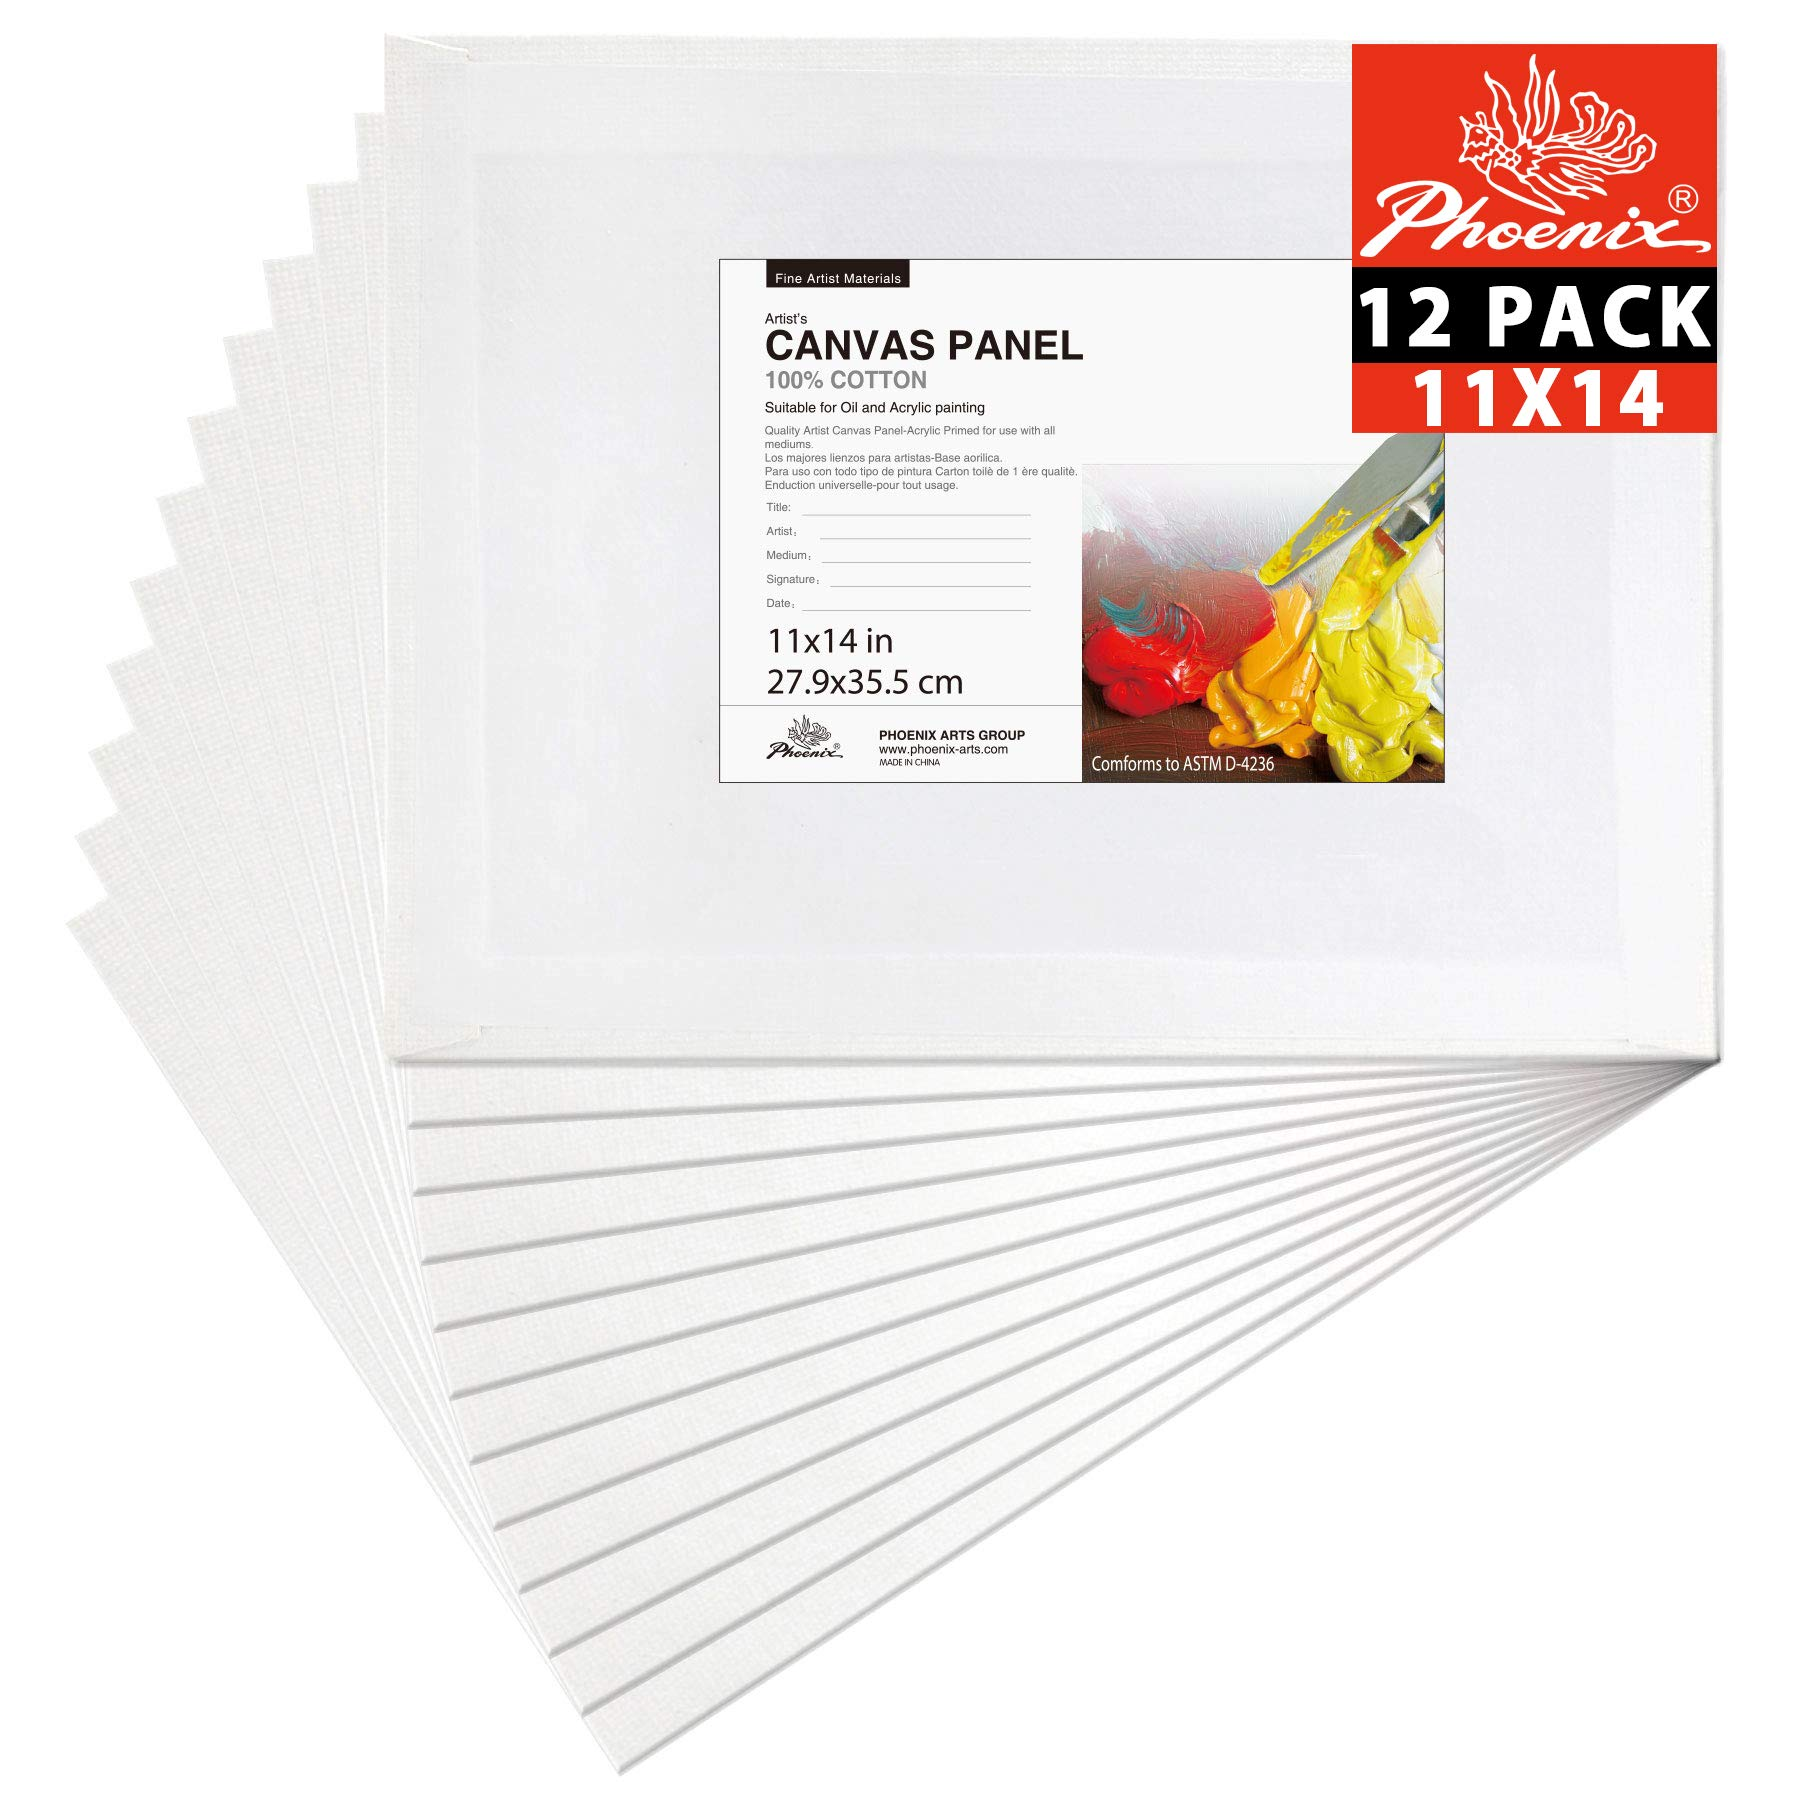 PHOENIX Painting Canvas Panel Boards - 11x14 Inch / 12 Pack - 1/7 Inch Deep Super Value Pack for Professional Artists, Students & Kids